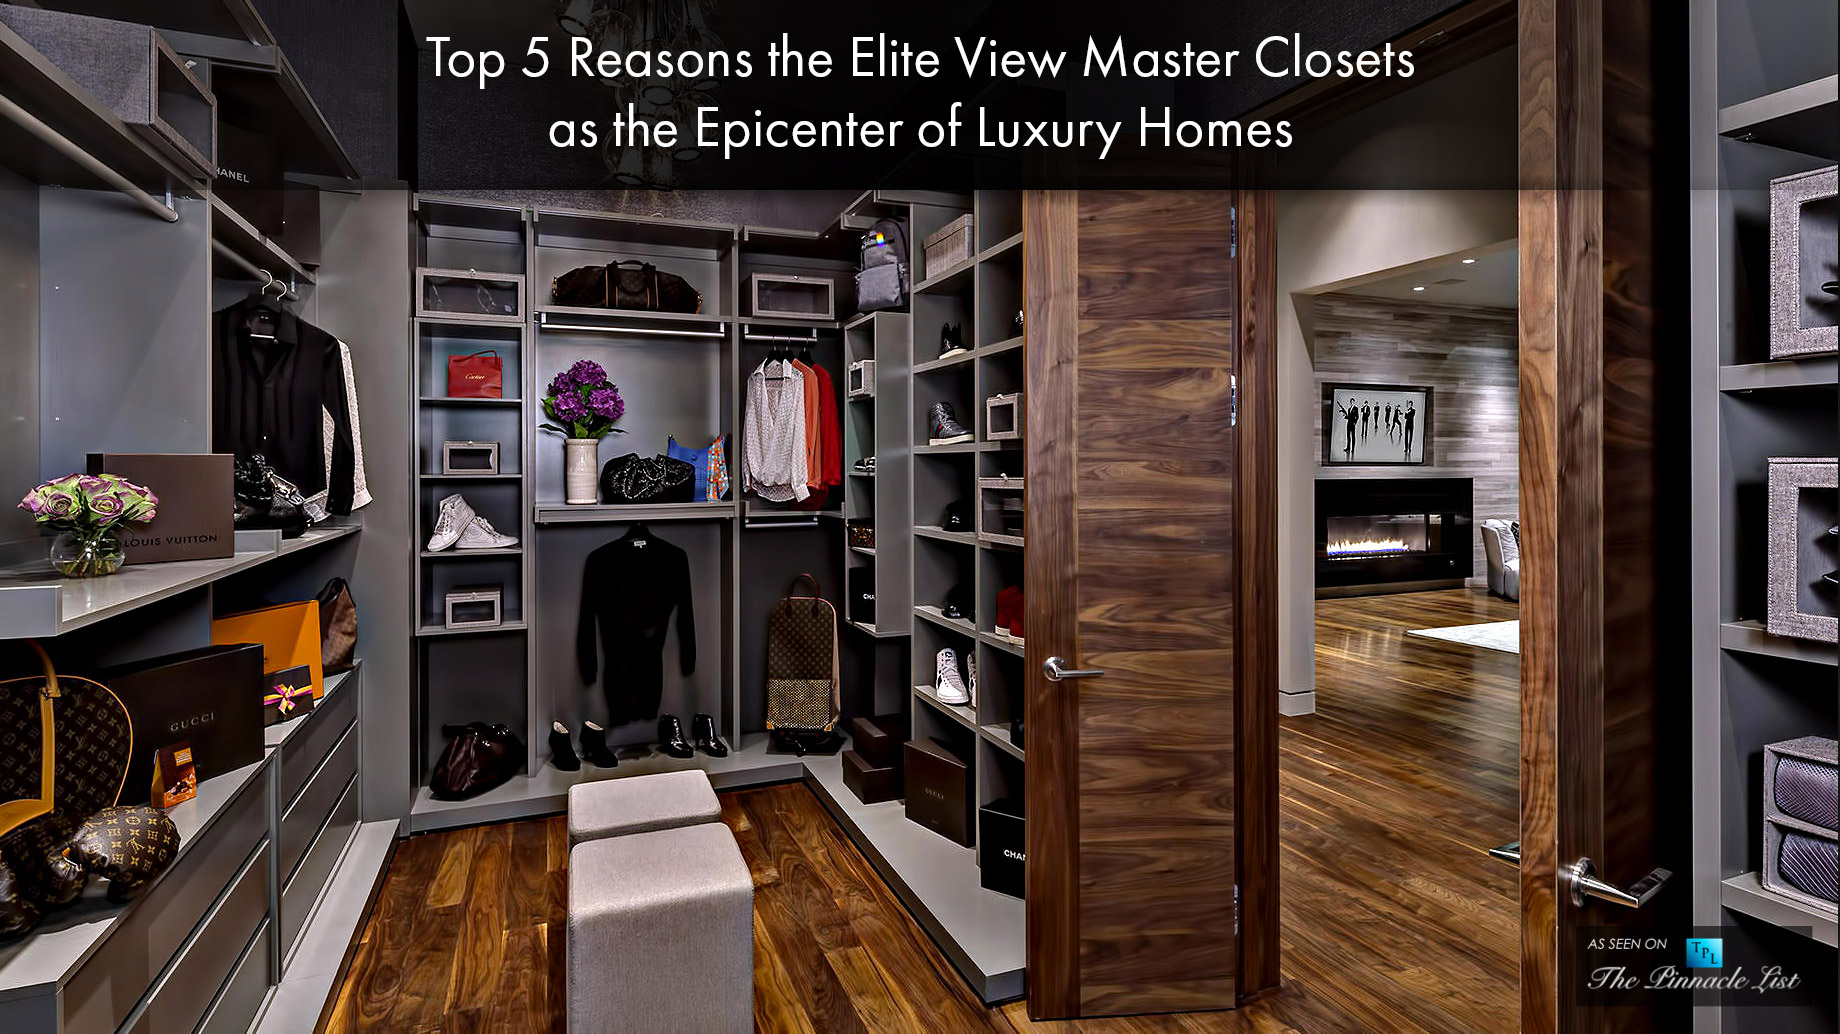 Top 5 Reasons the Elite View Master Closets as the Epicenter of Luxury Homes